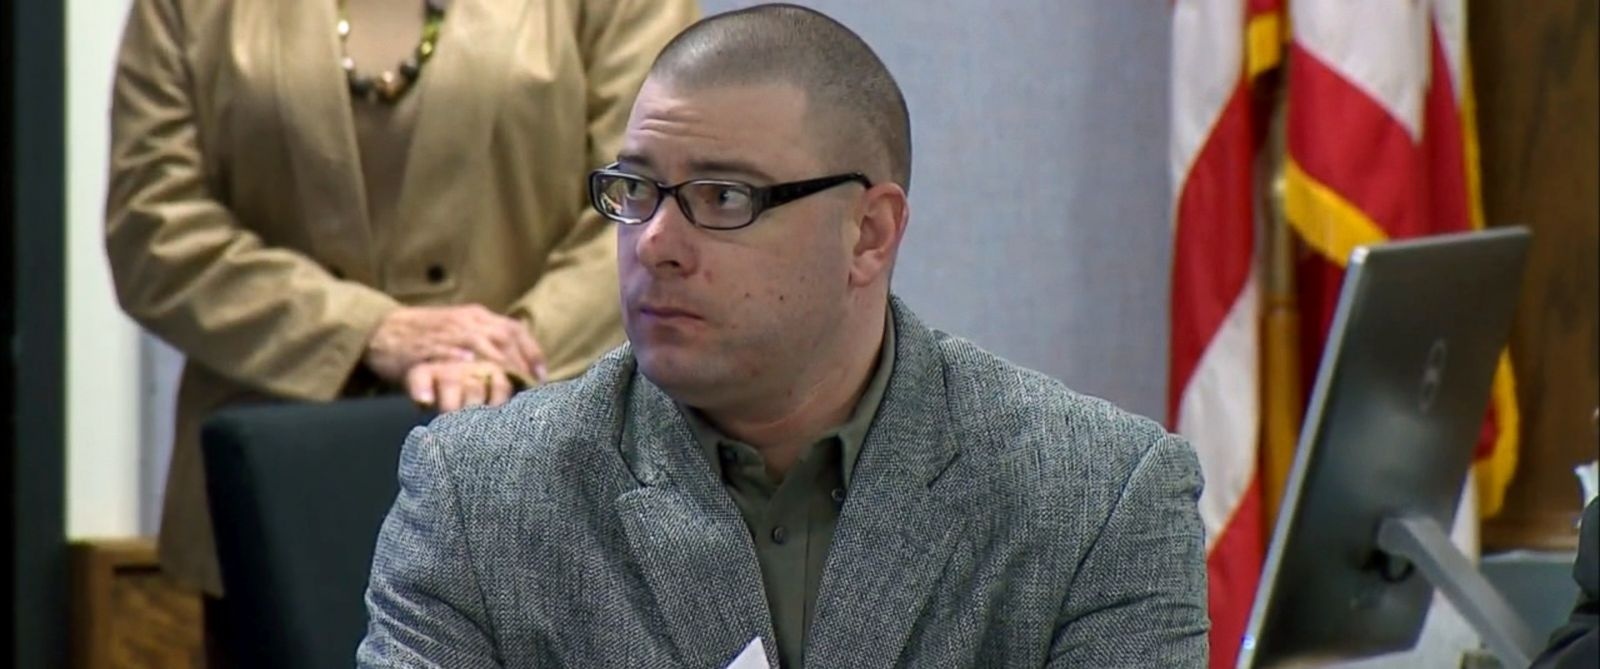 PHOTO: Eddie Ray Routh appeared in court in Texas on Monday Feb. 9, two days ahead of the expected start date for his trial.